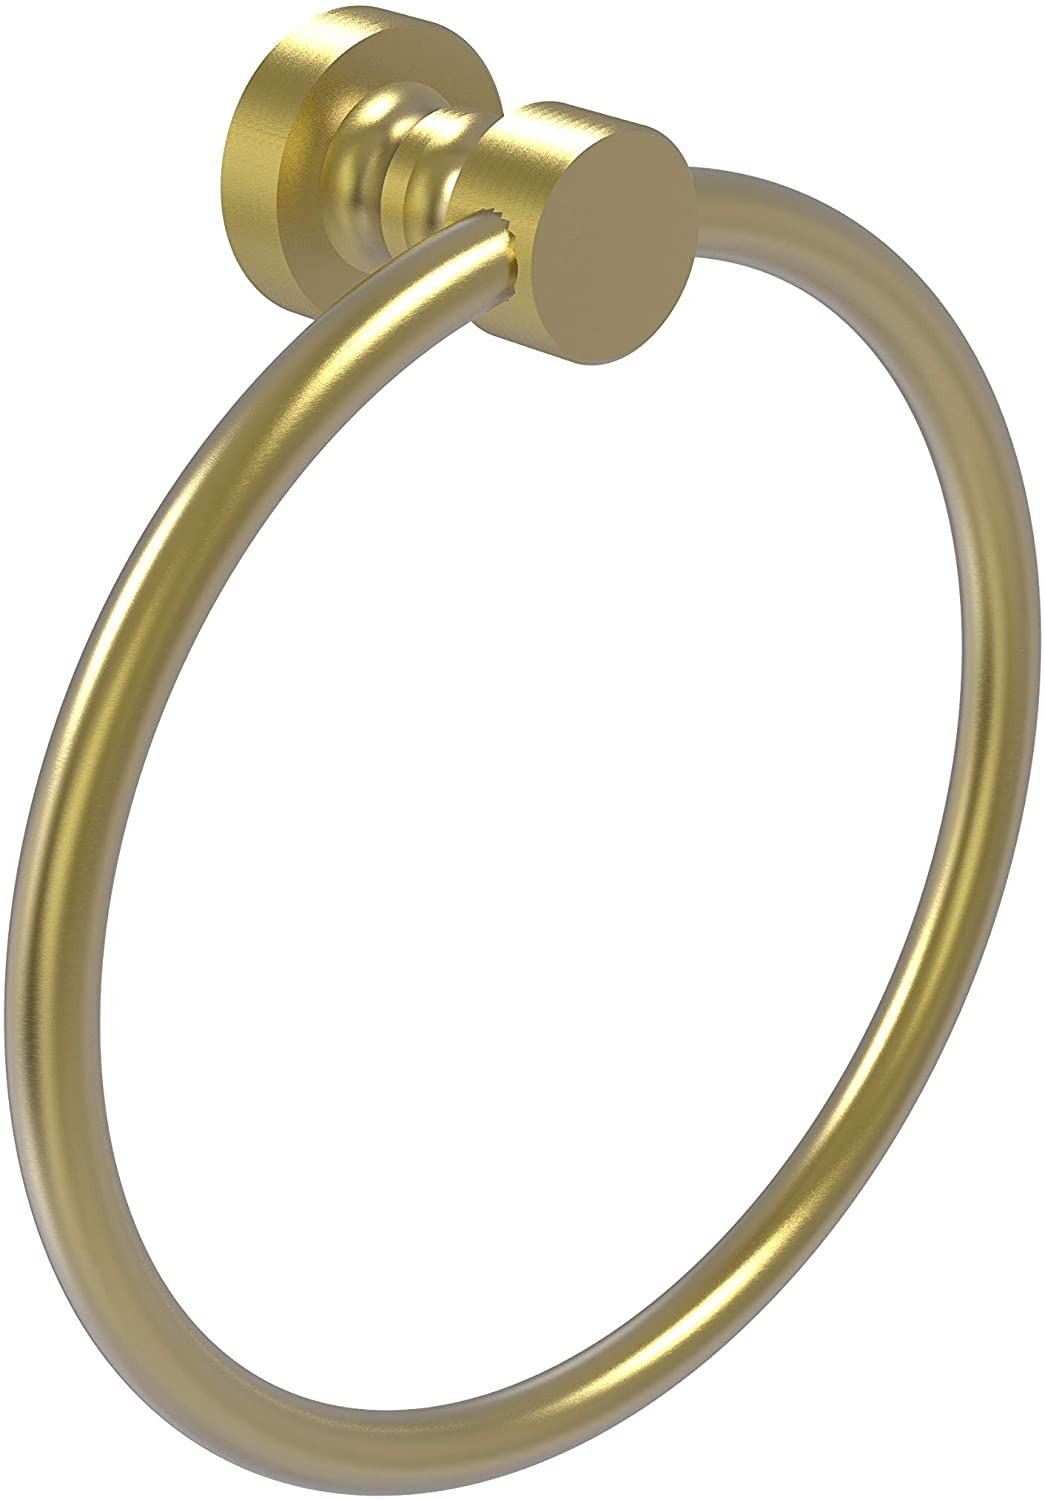 Allied Brass FT-16 Foxtrot Collection Towel Ring, Satin Brass